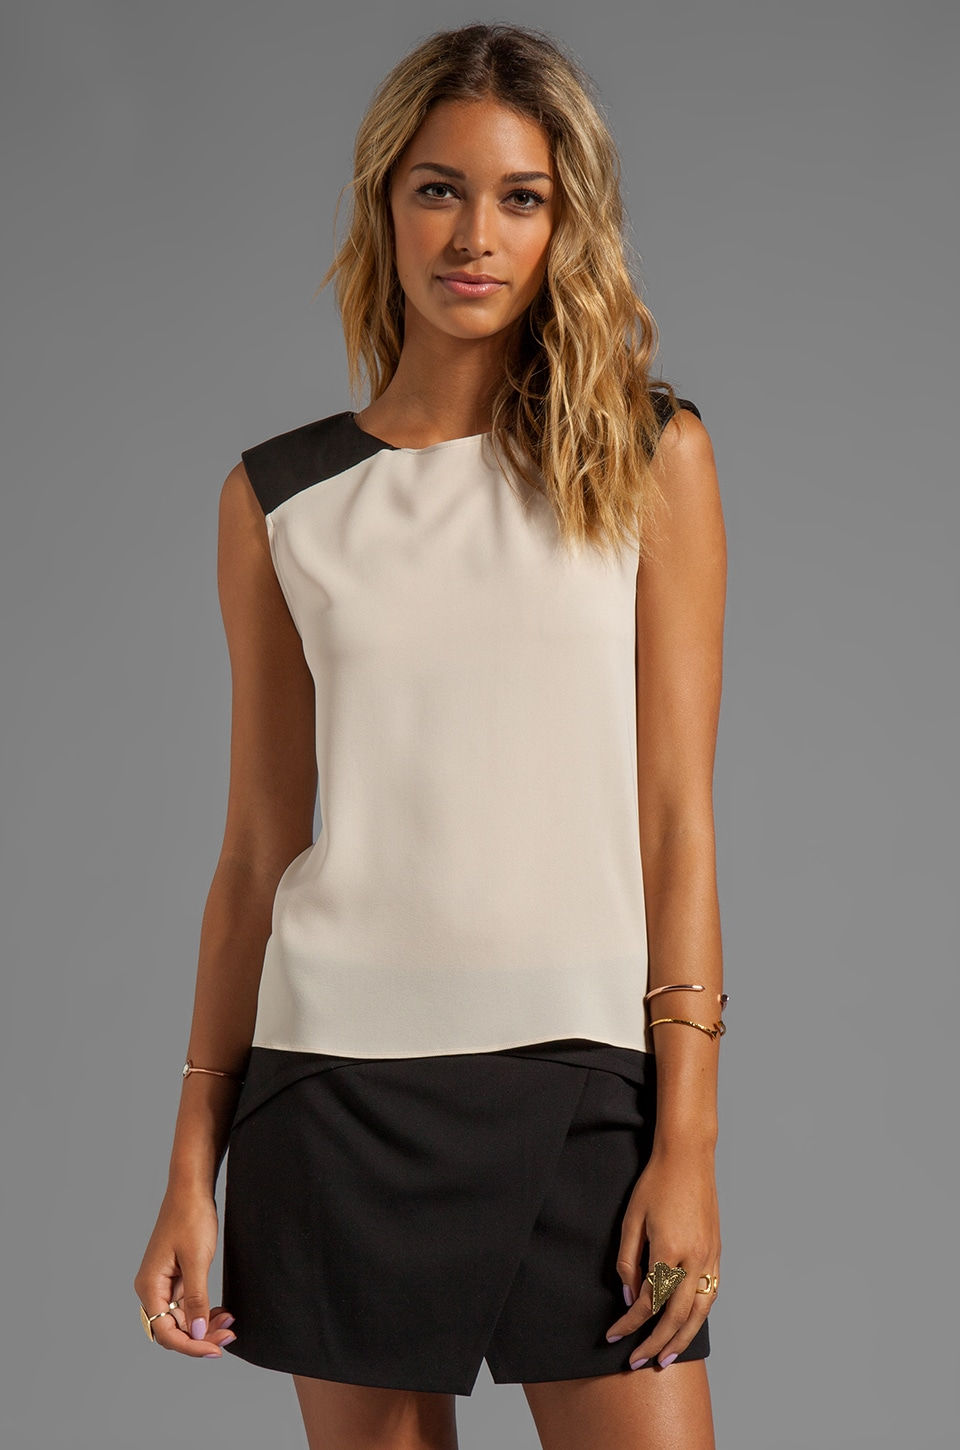 Alice + Olivia Leather Shoulder Muscle Tee in Nude/Black